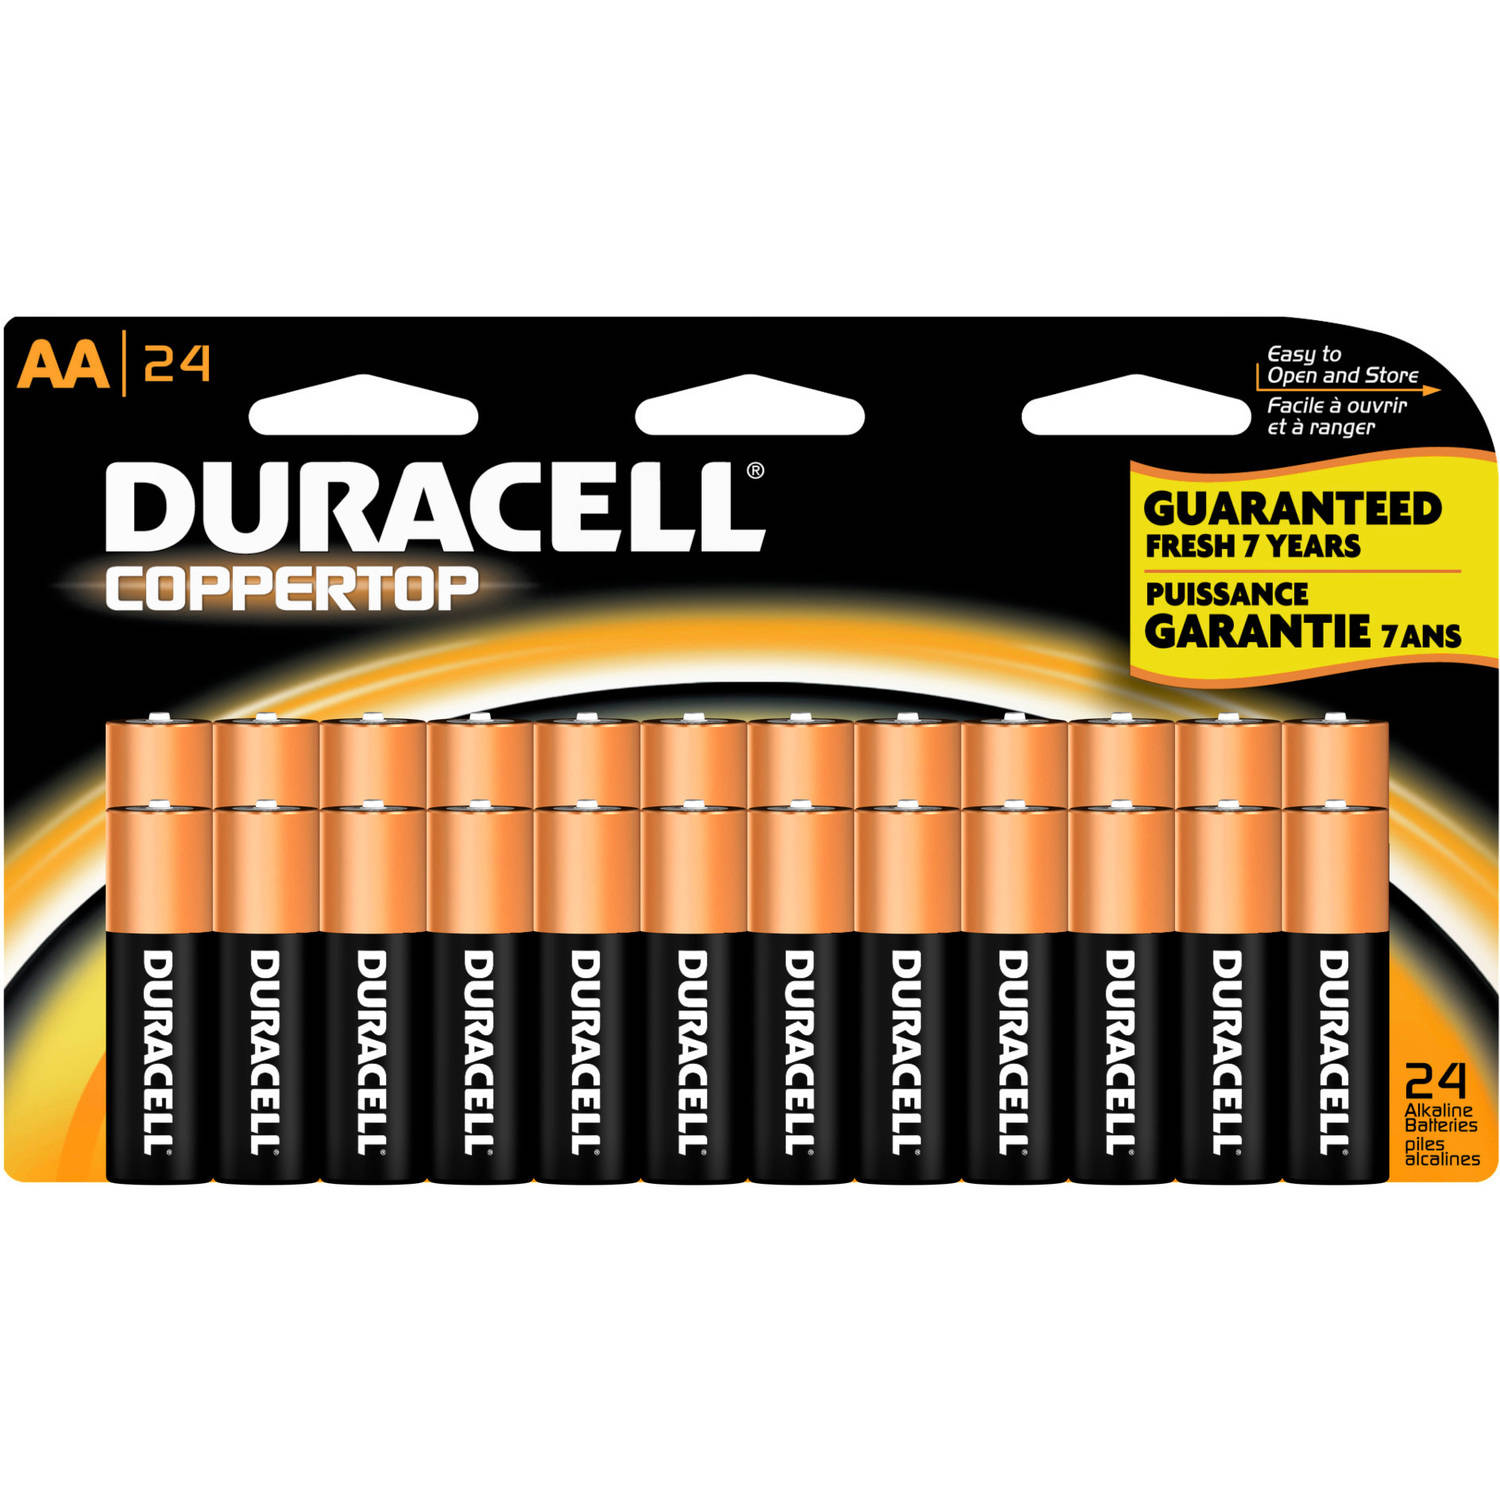 Duracell Coppertop AA Household Batteries, 24 Count